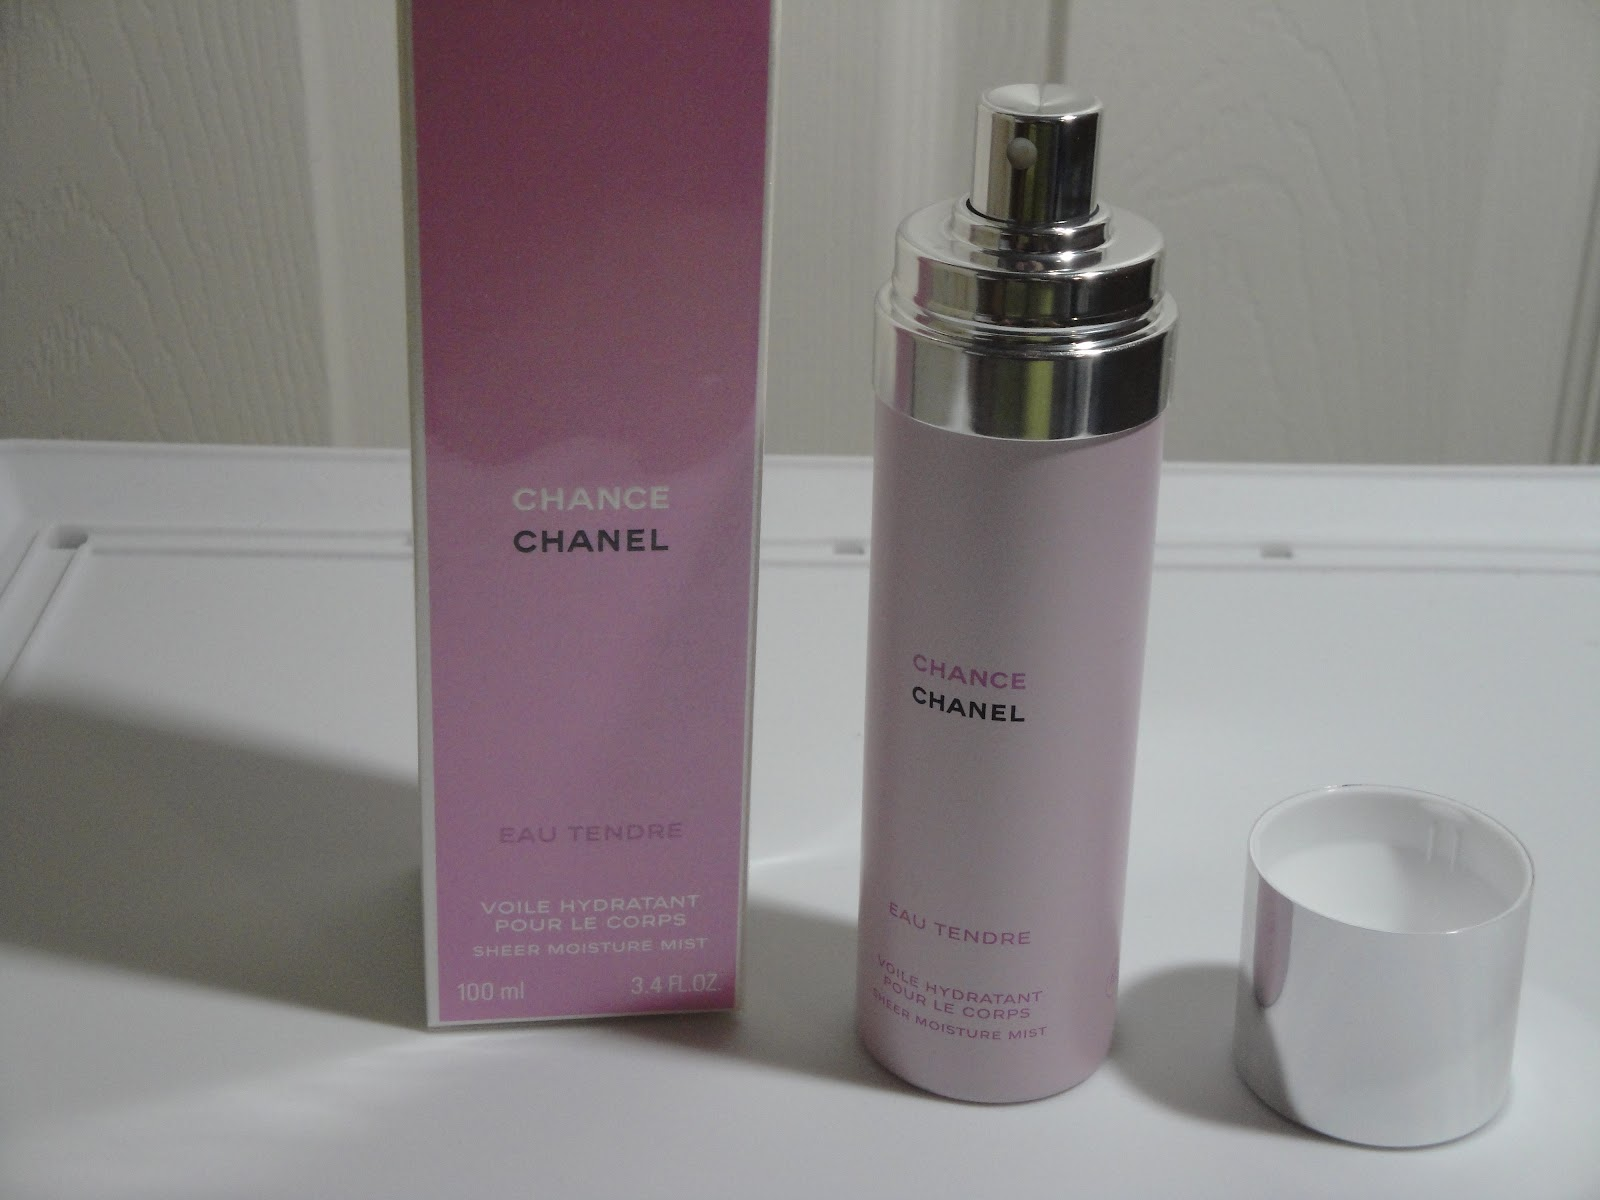 Back in September I had posted about the new Chanel Chance Moisture mist  (you can read the post here) that was first available in February of this  year. bb7e5907f